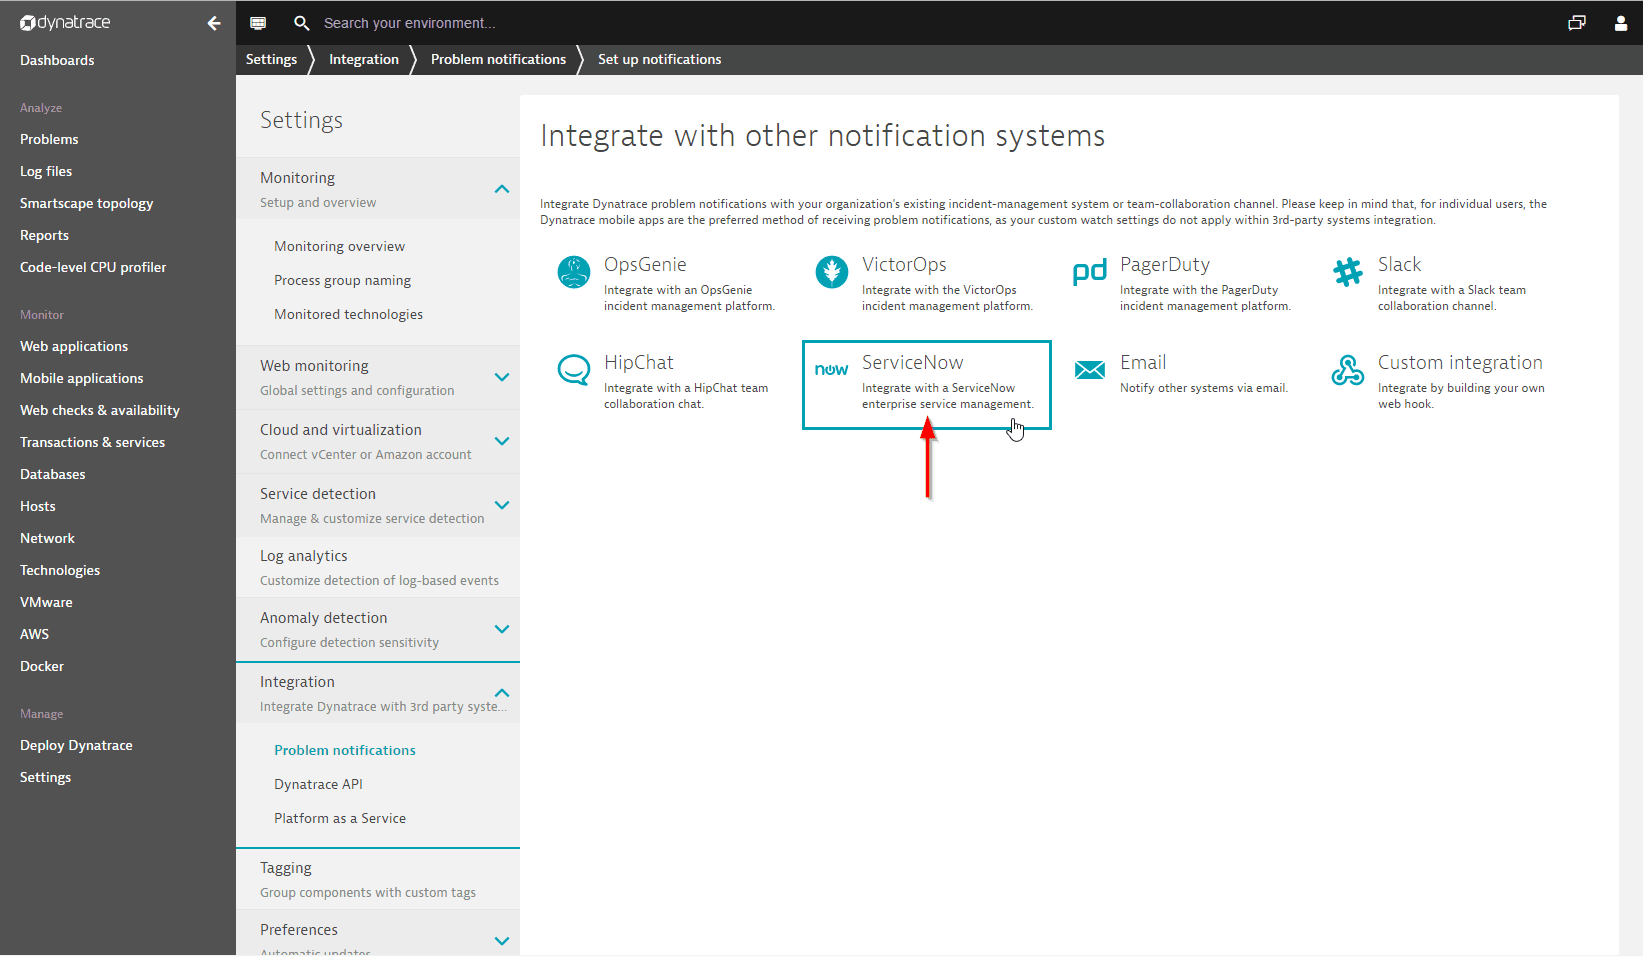 Integrate with other notification systems page